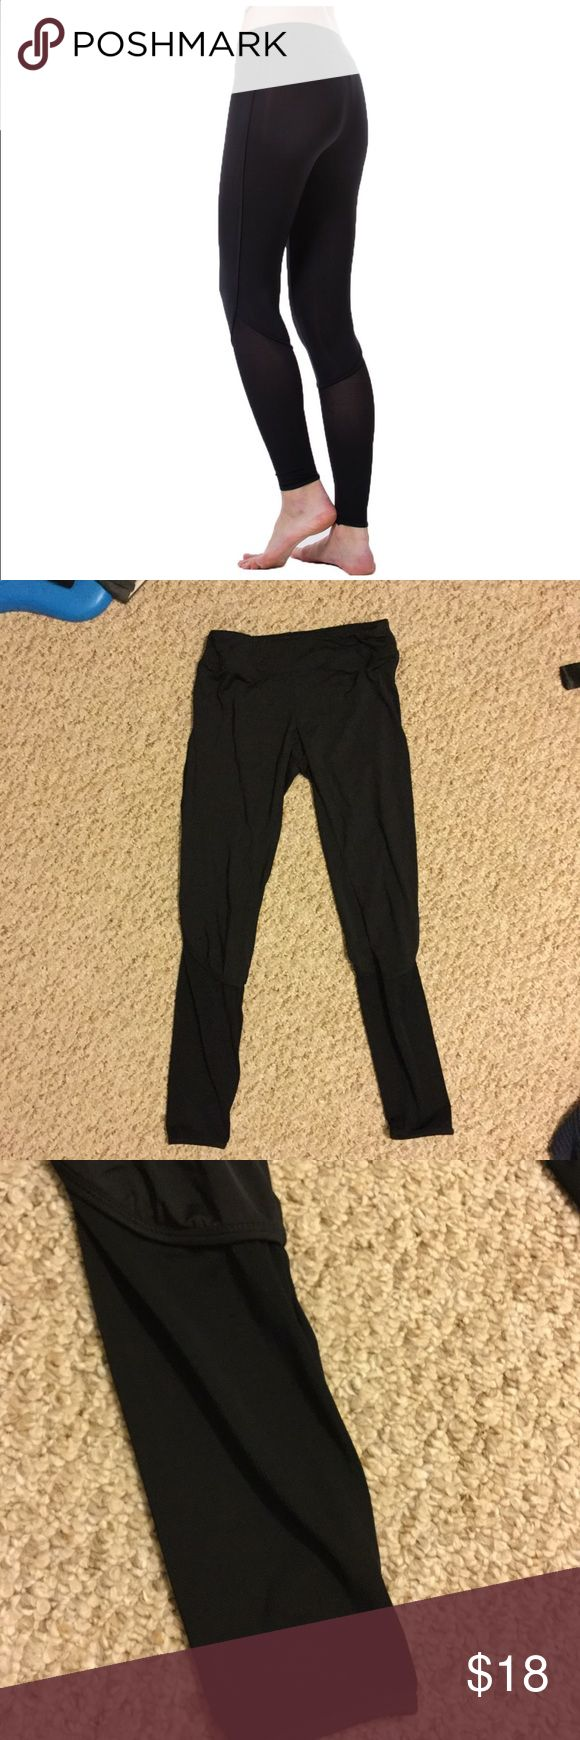 NWT Women Yoga Pants Leggings with Mesh Sz Med The size of these pants are Asia size, it may run SMALLER than general size of America Pants, please have a check of the size detail before purchasing. Color black  (1)100% Brand new and high quality  (2)Sits slightly the natural waist with tighten strap.  (3)This pants suited for young lady,girls,junior.  (4)Not see through yoga pants as cheap yoga pants.  (5)This is a thick pants not as inexpensive tights, and very good for exercise for…